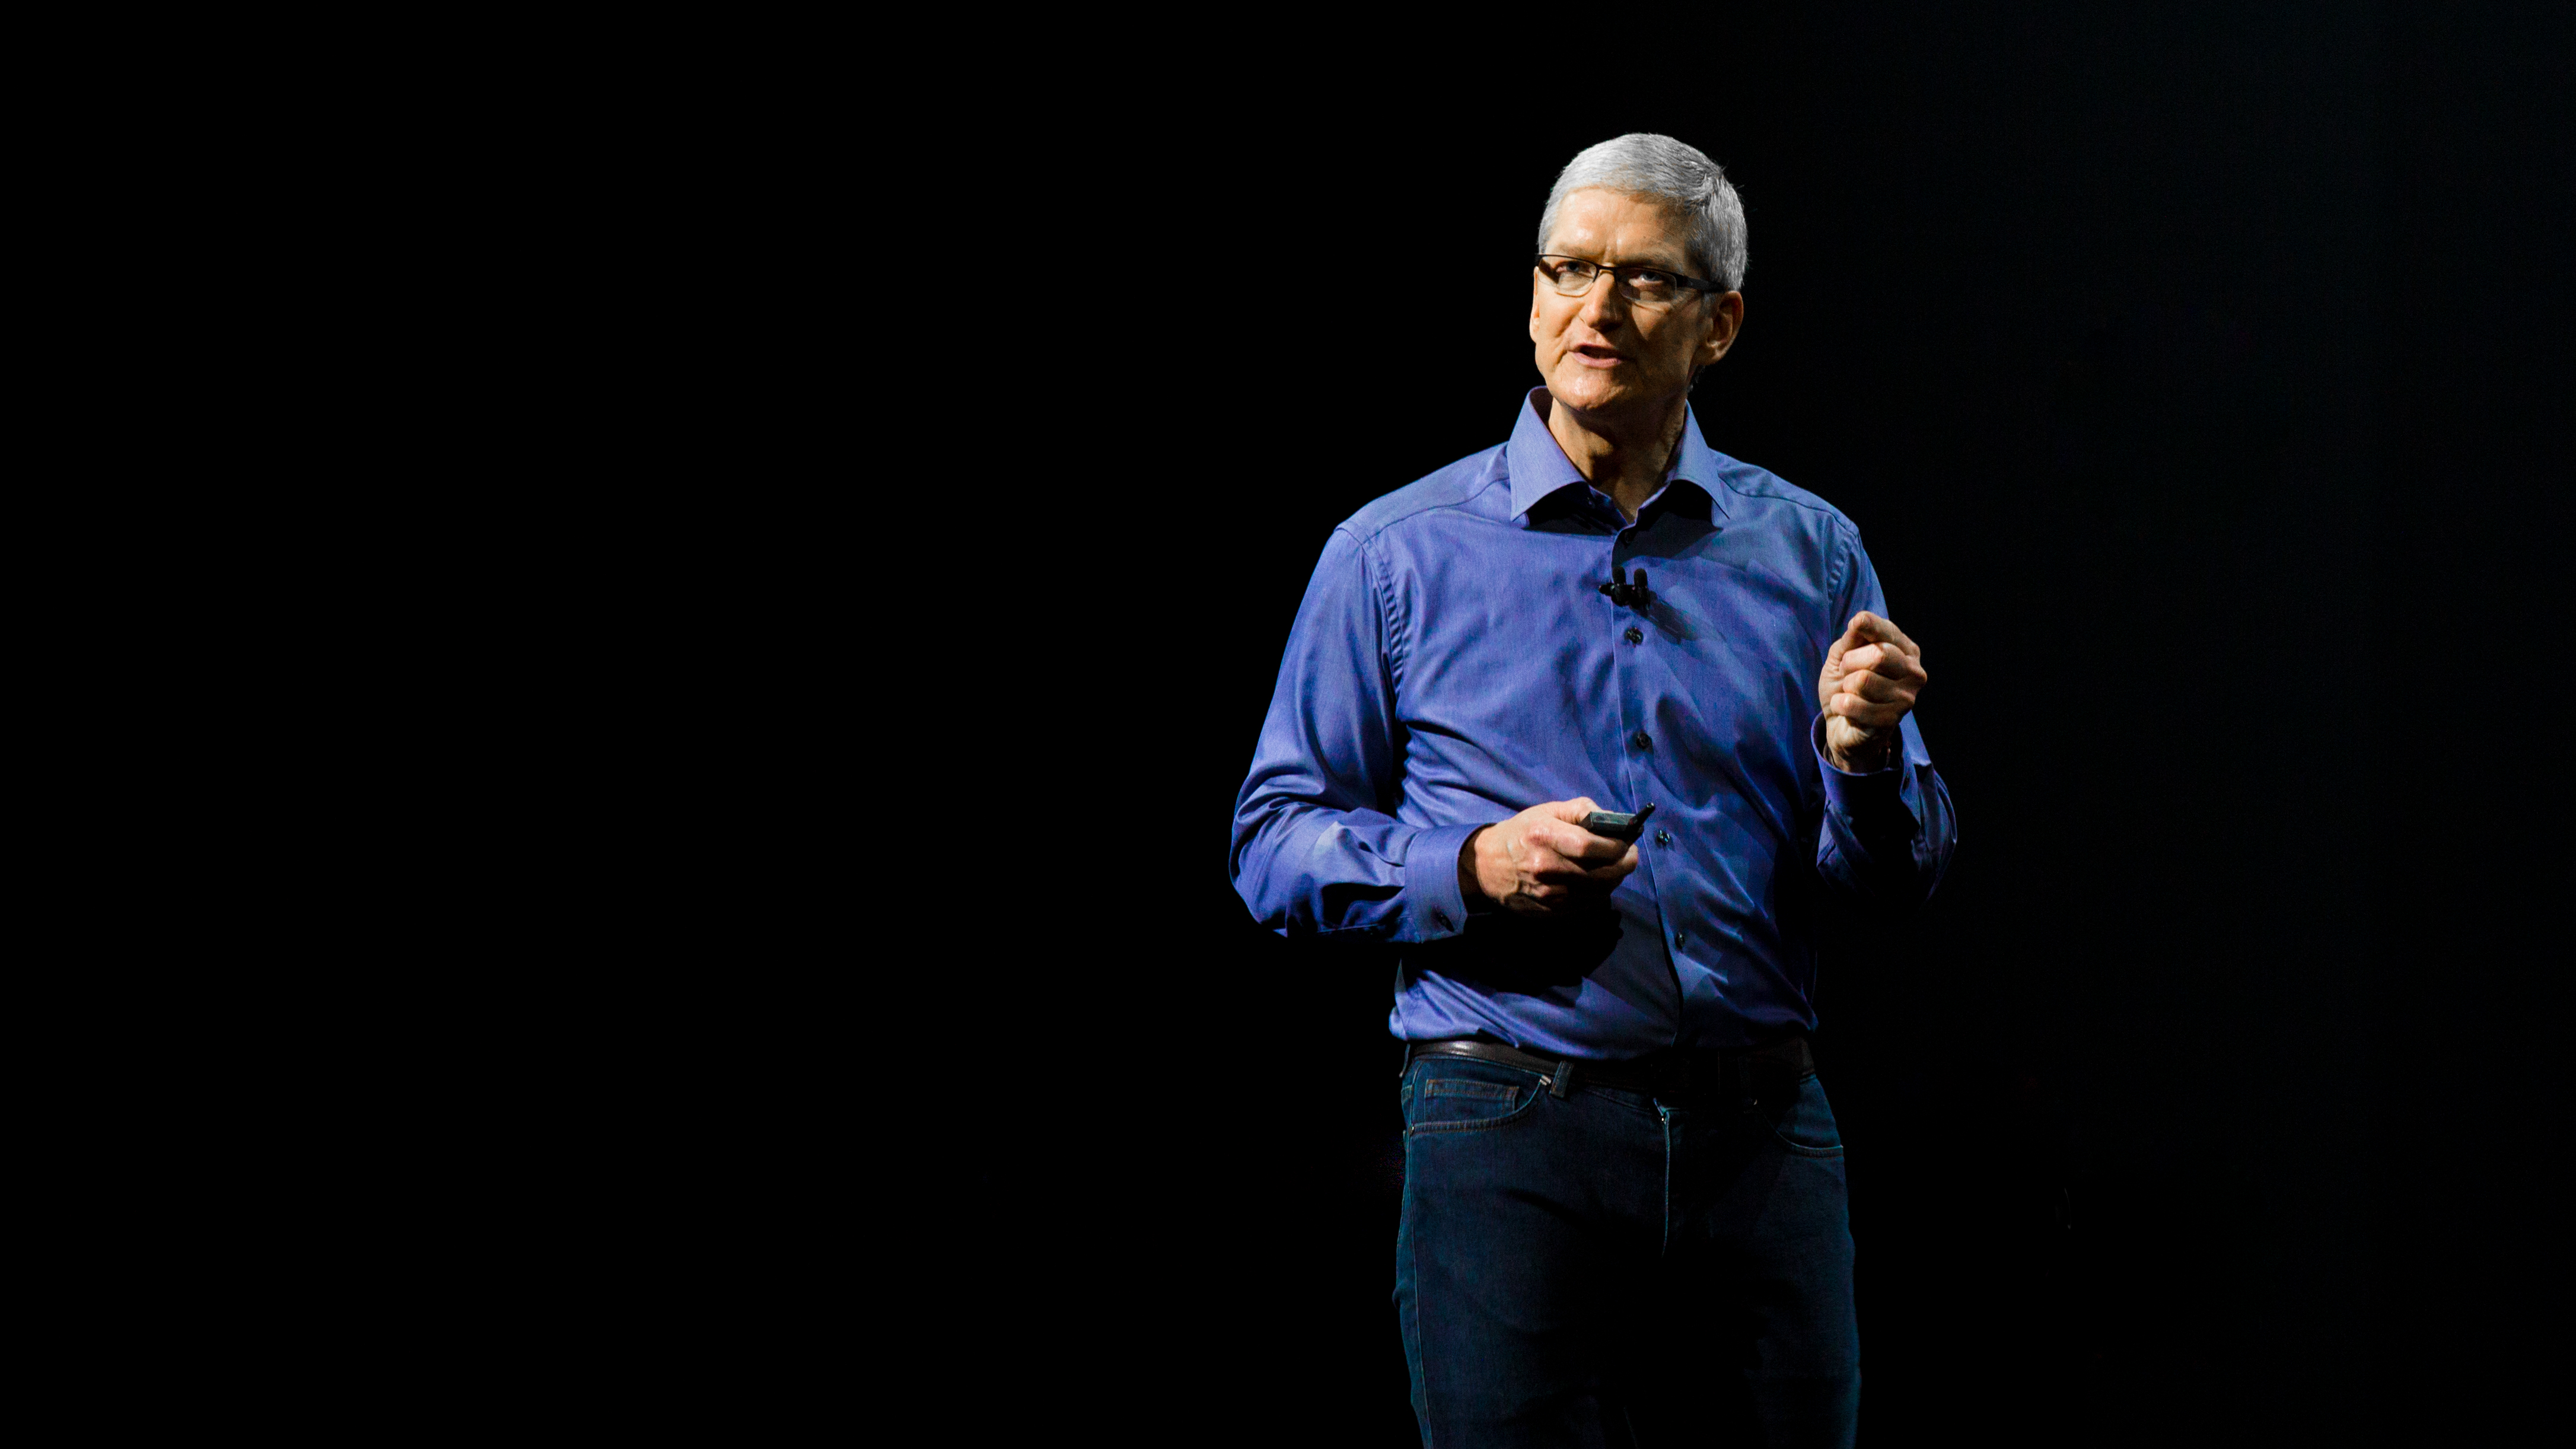 August 2011 - Tim Cook becomes CEO